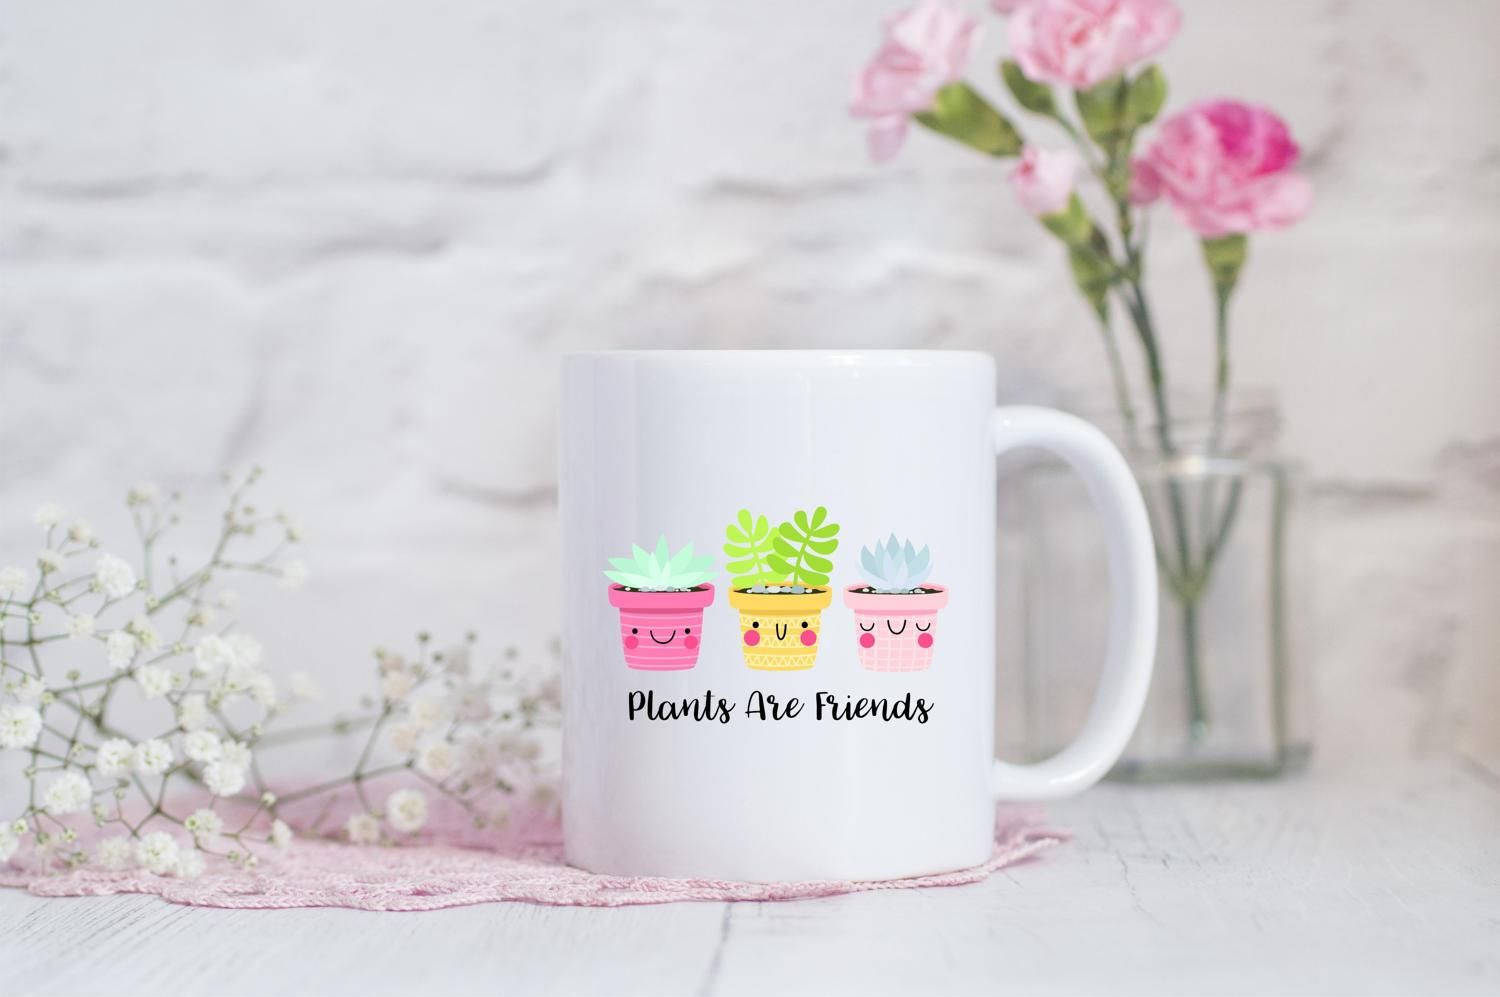 Plants are friends coffee mug products easter gift plants are friends mug best friend gift vegan gift idea negle Choice Image